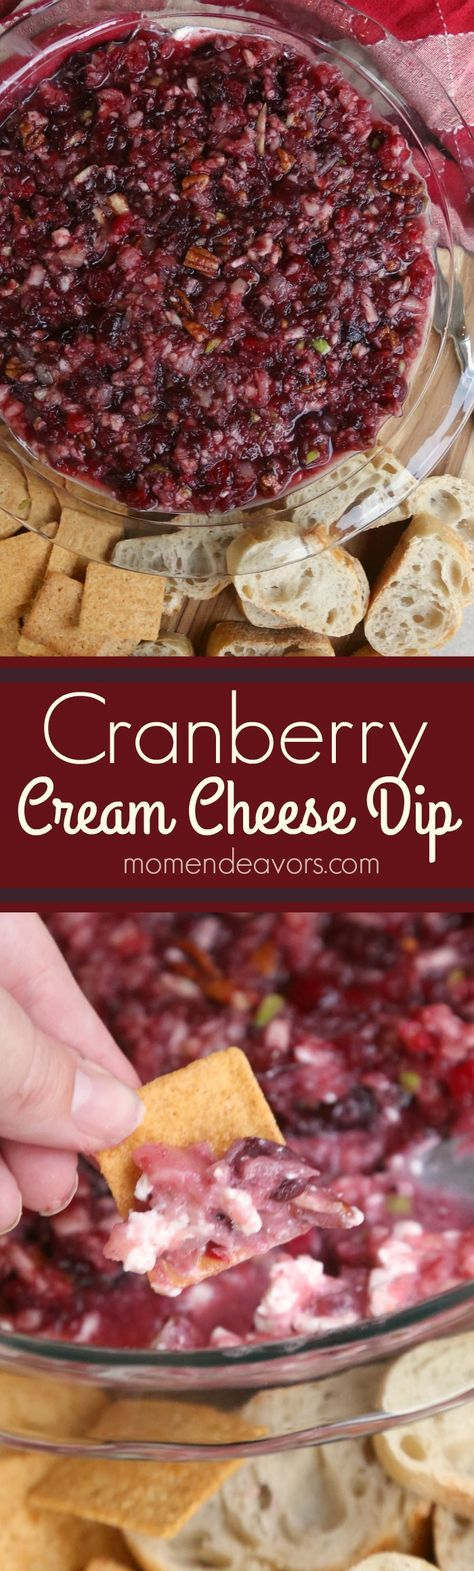 Cranberry Cream Cheese Dip Recipe - a delicious holiday appetizer, perfect for your Thanksgiving or Christmas meals!